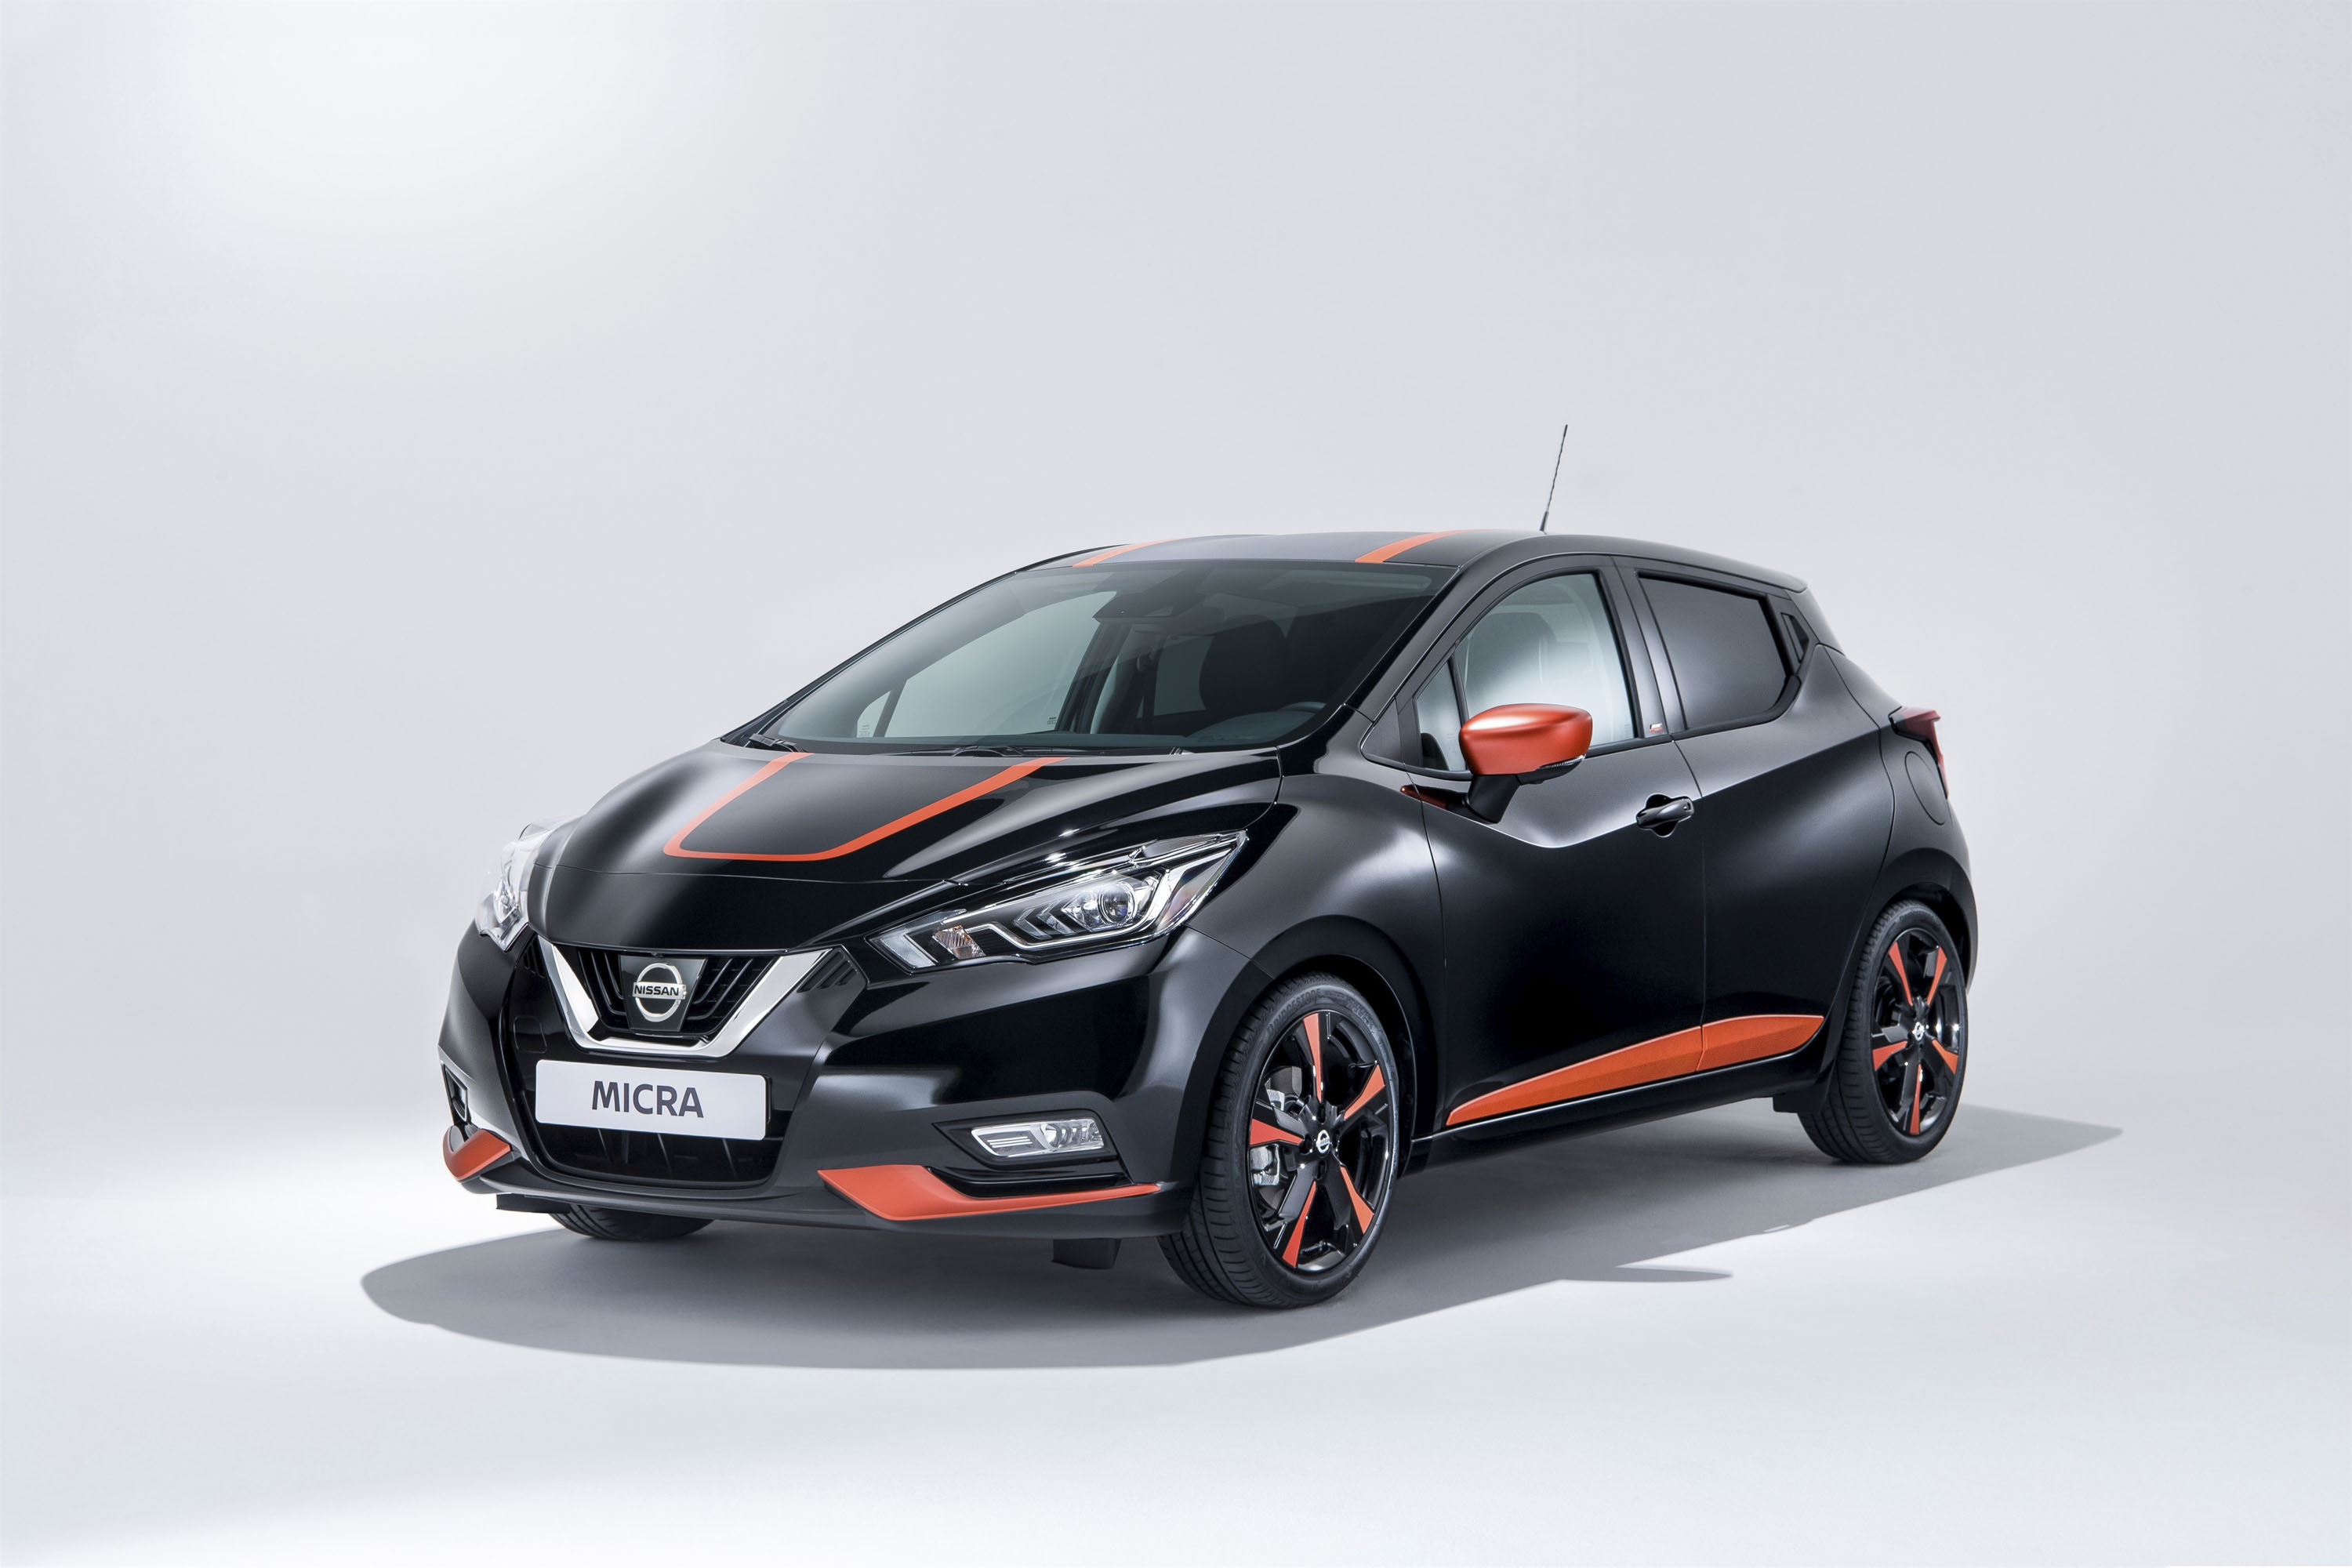 2017 Nissan Micra Bose Personal Edition | Top Speed. »